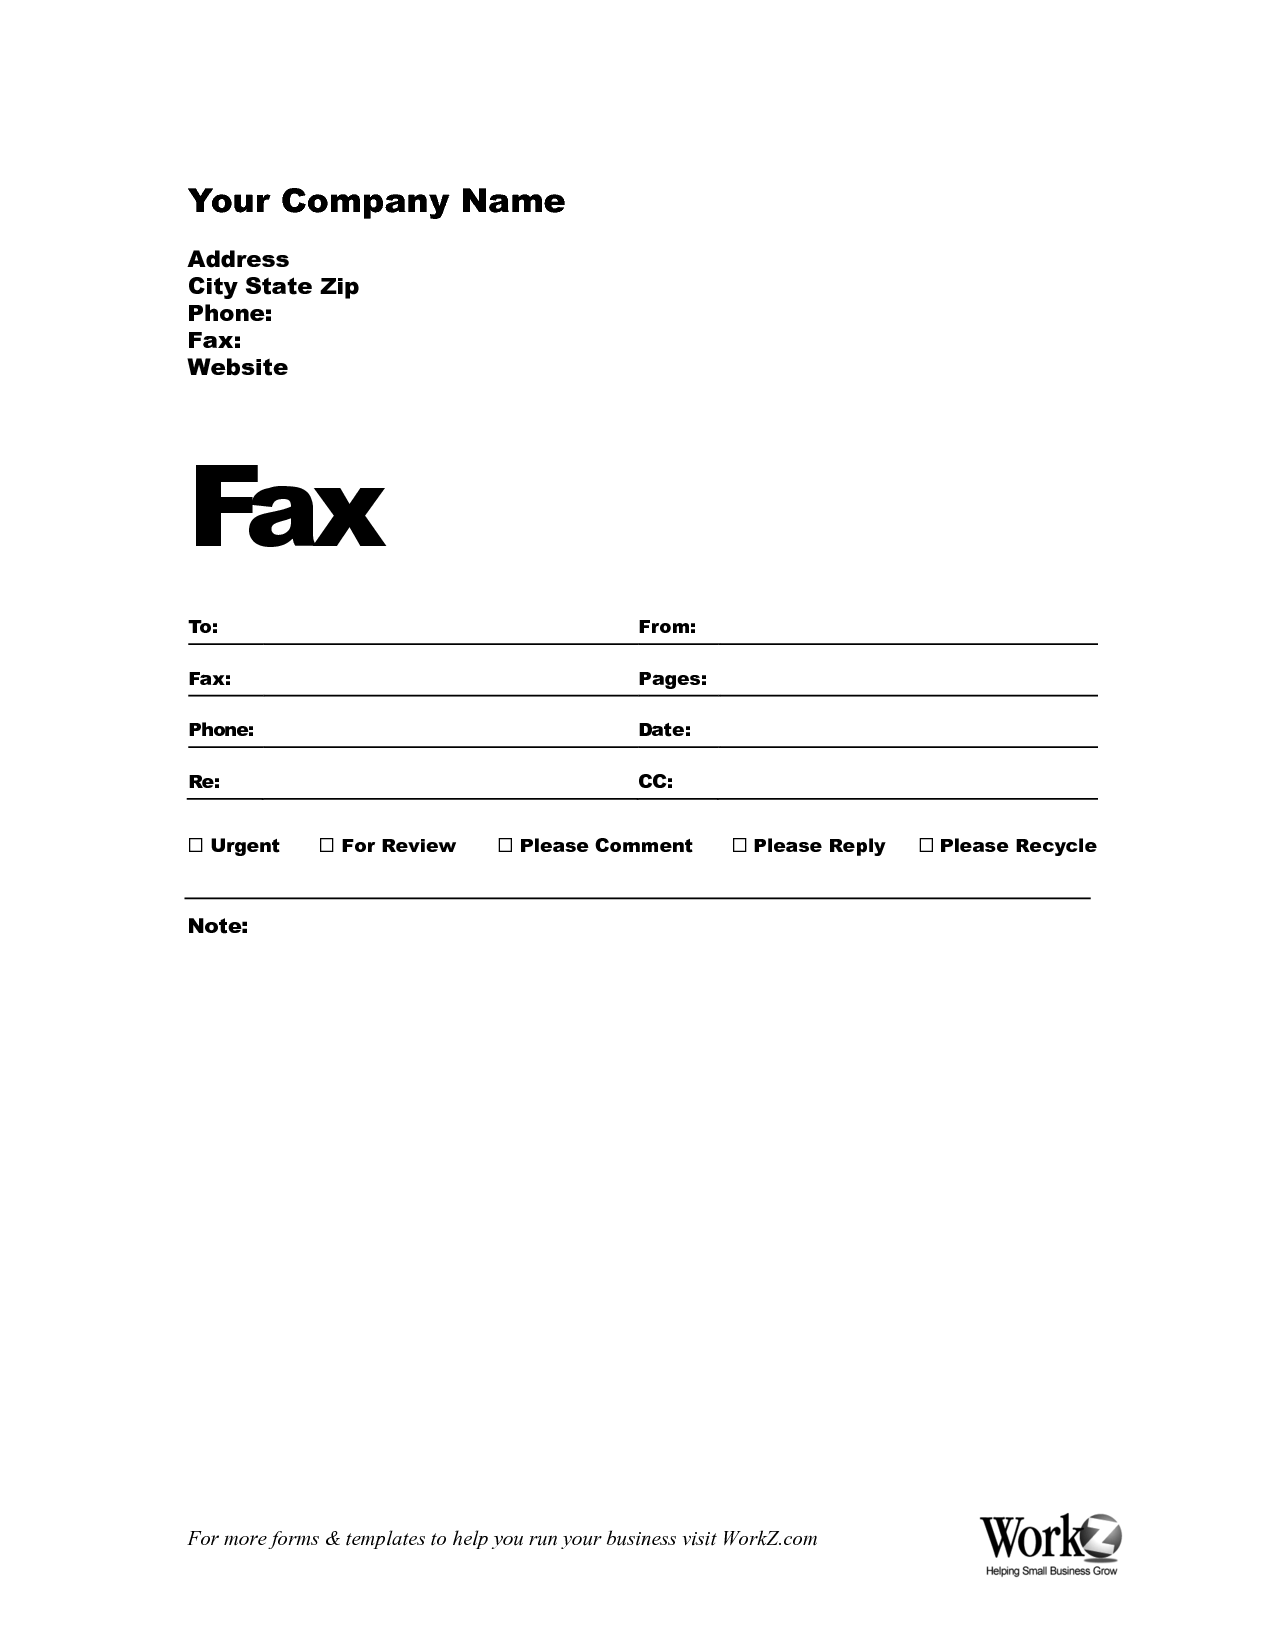 fax covering letters template fax covering letters